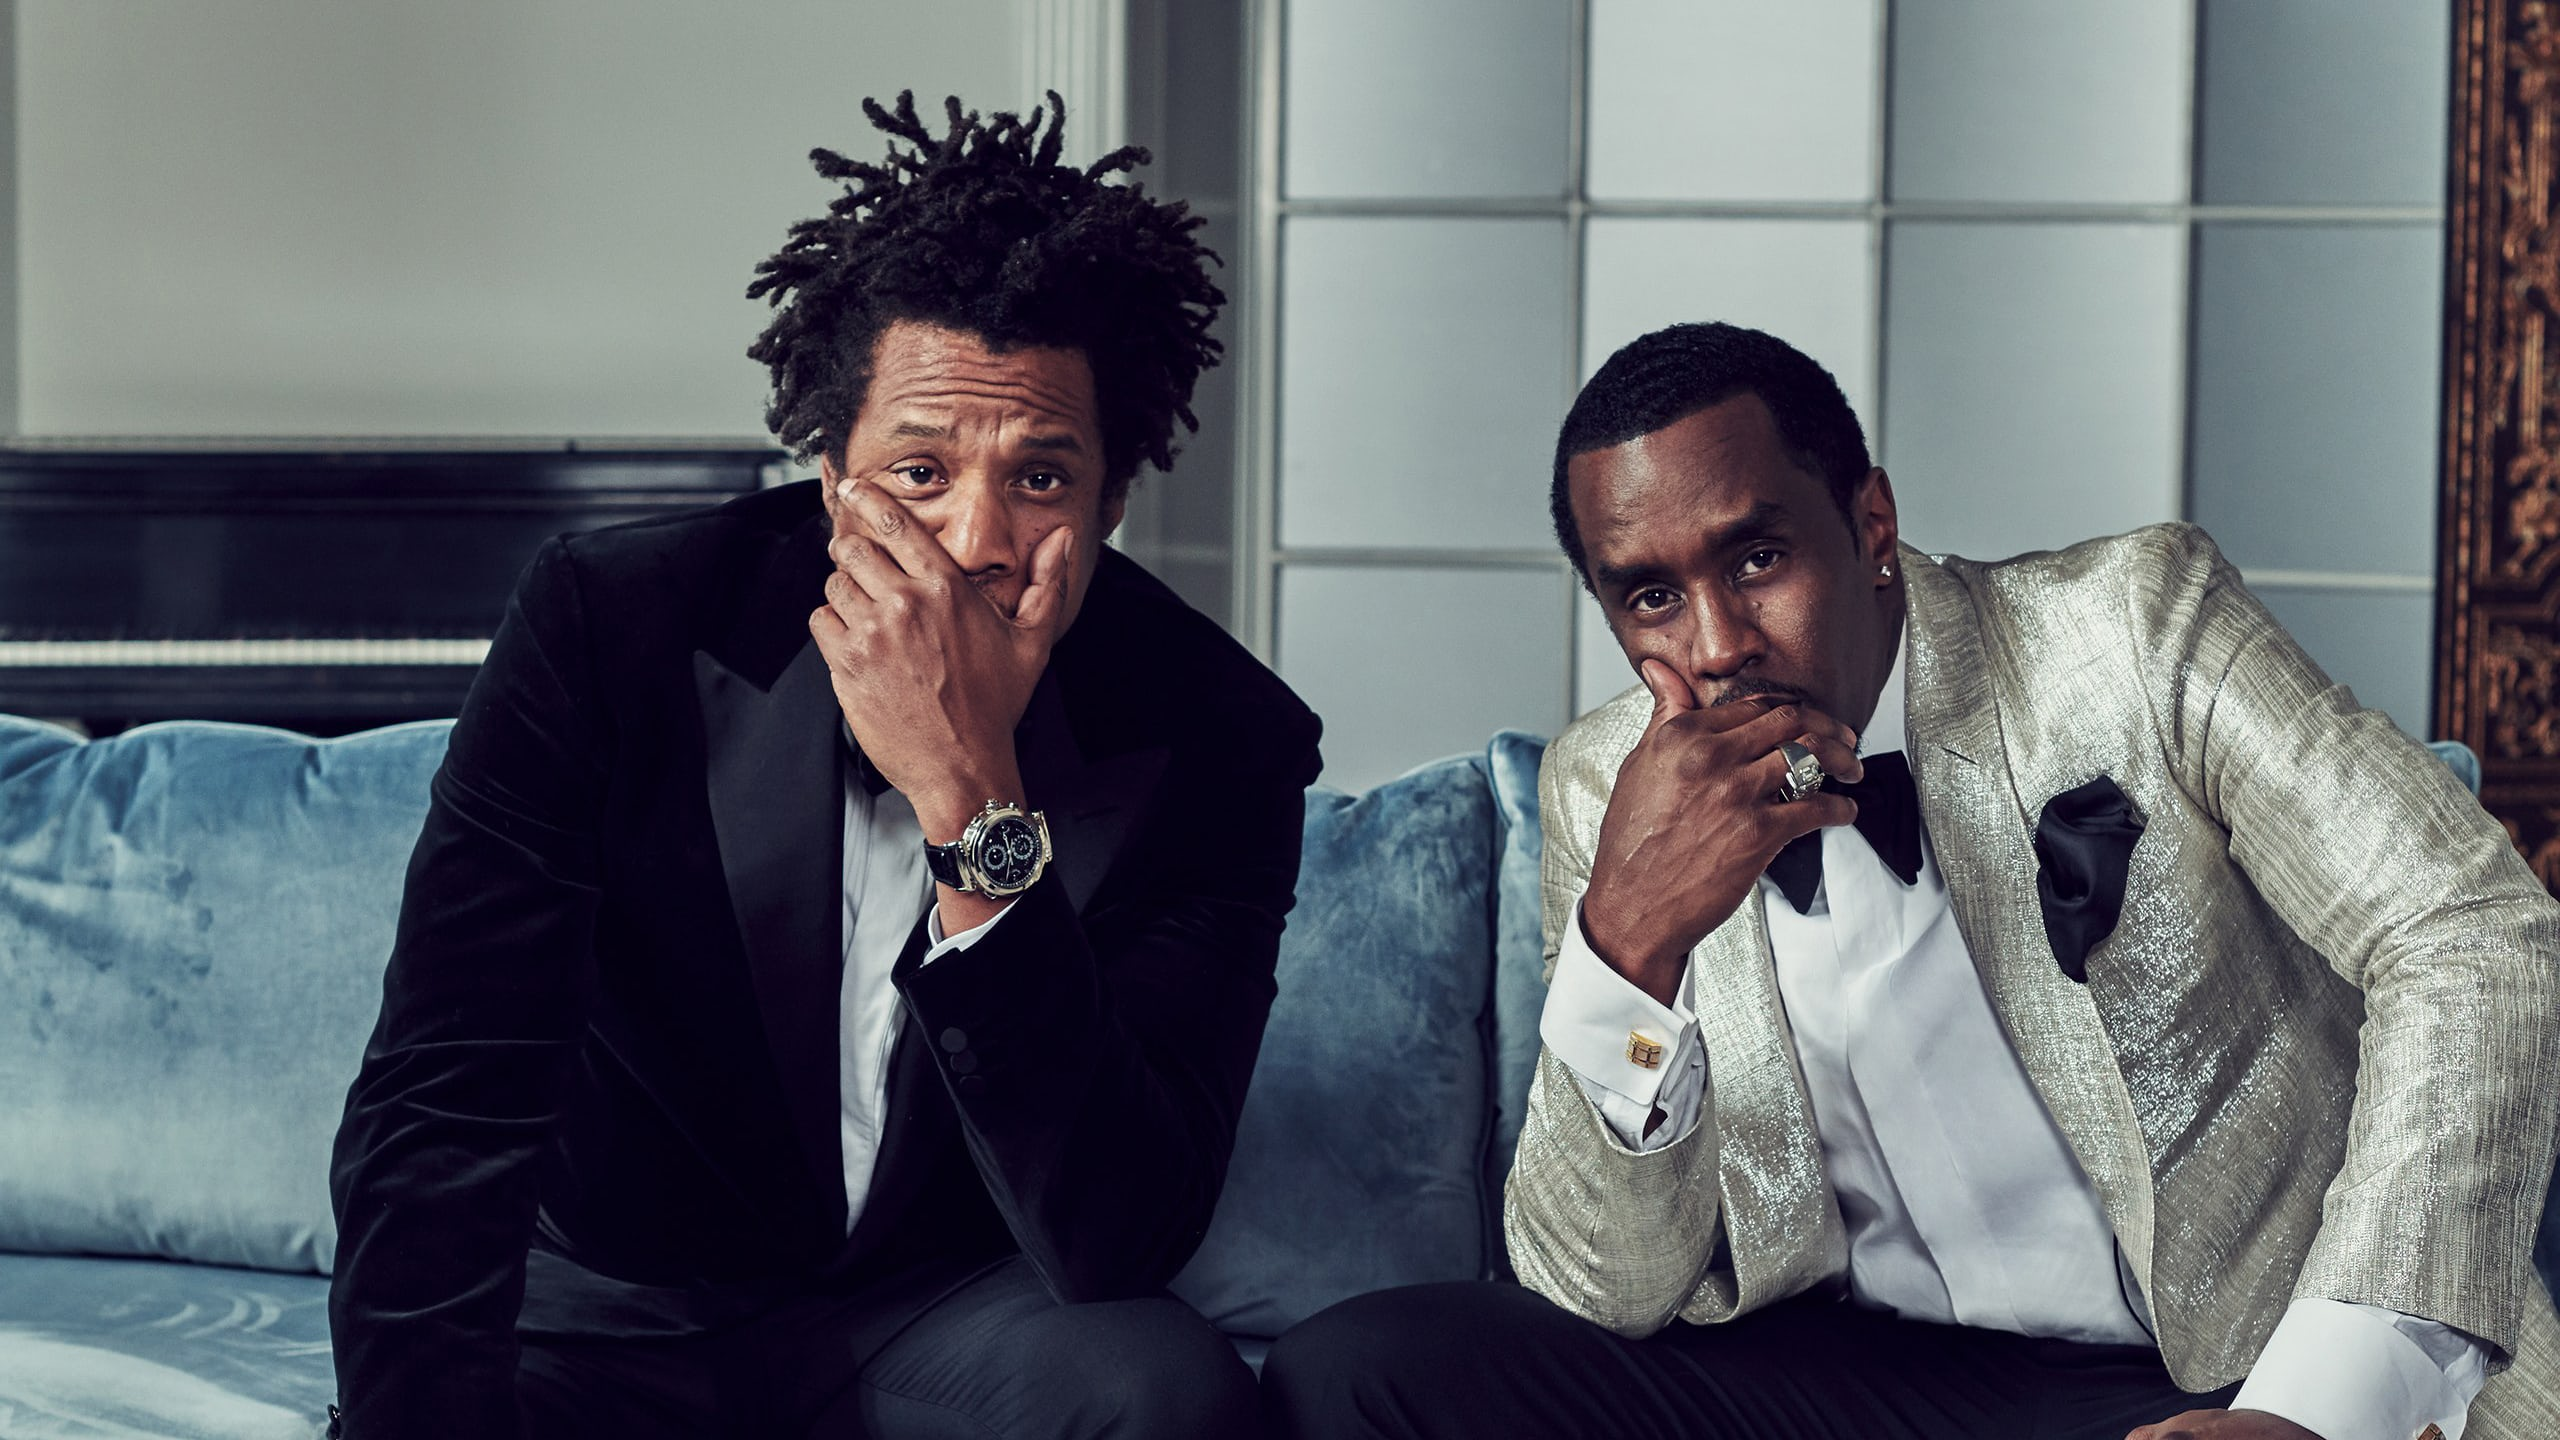 drake and jay-z's watches